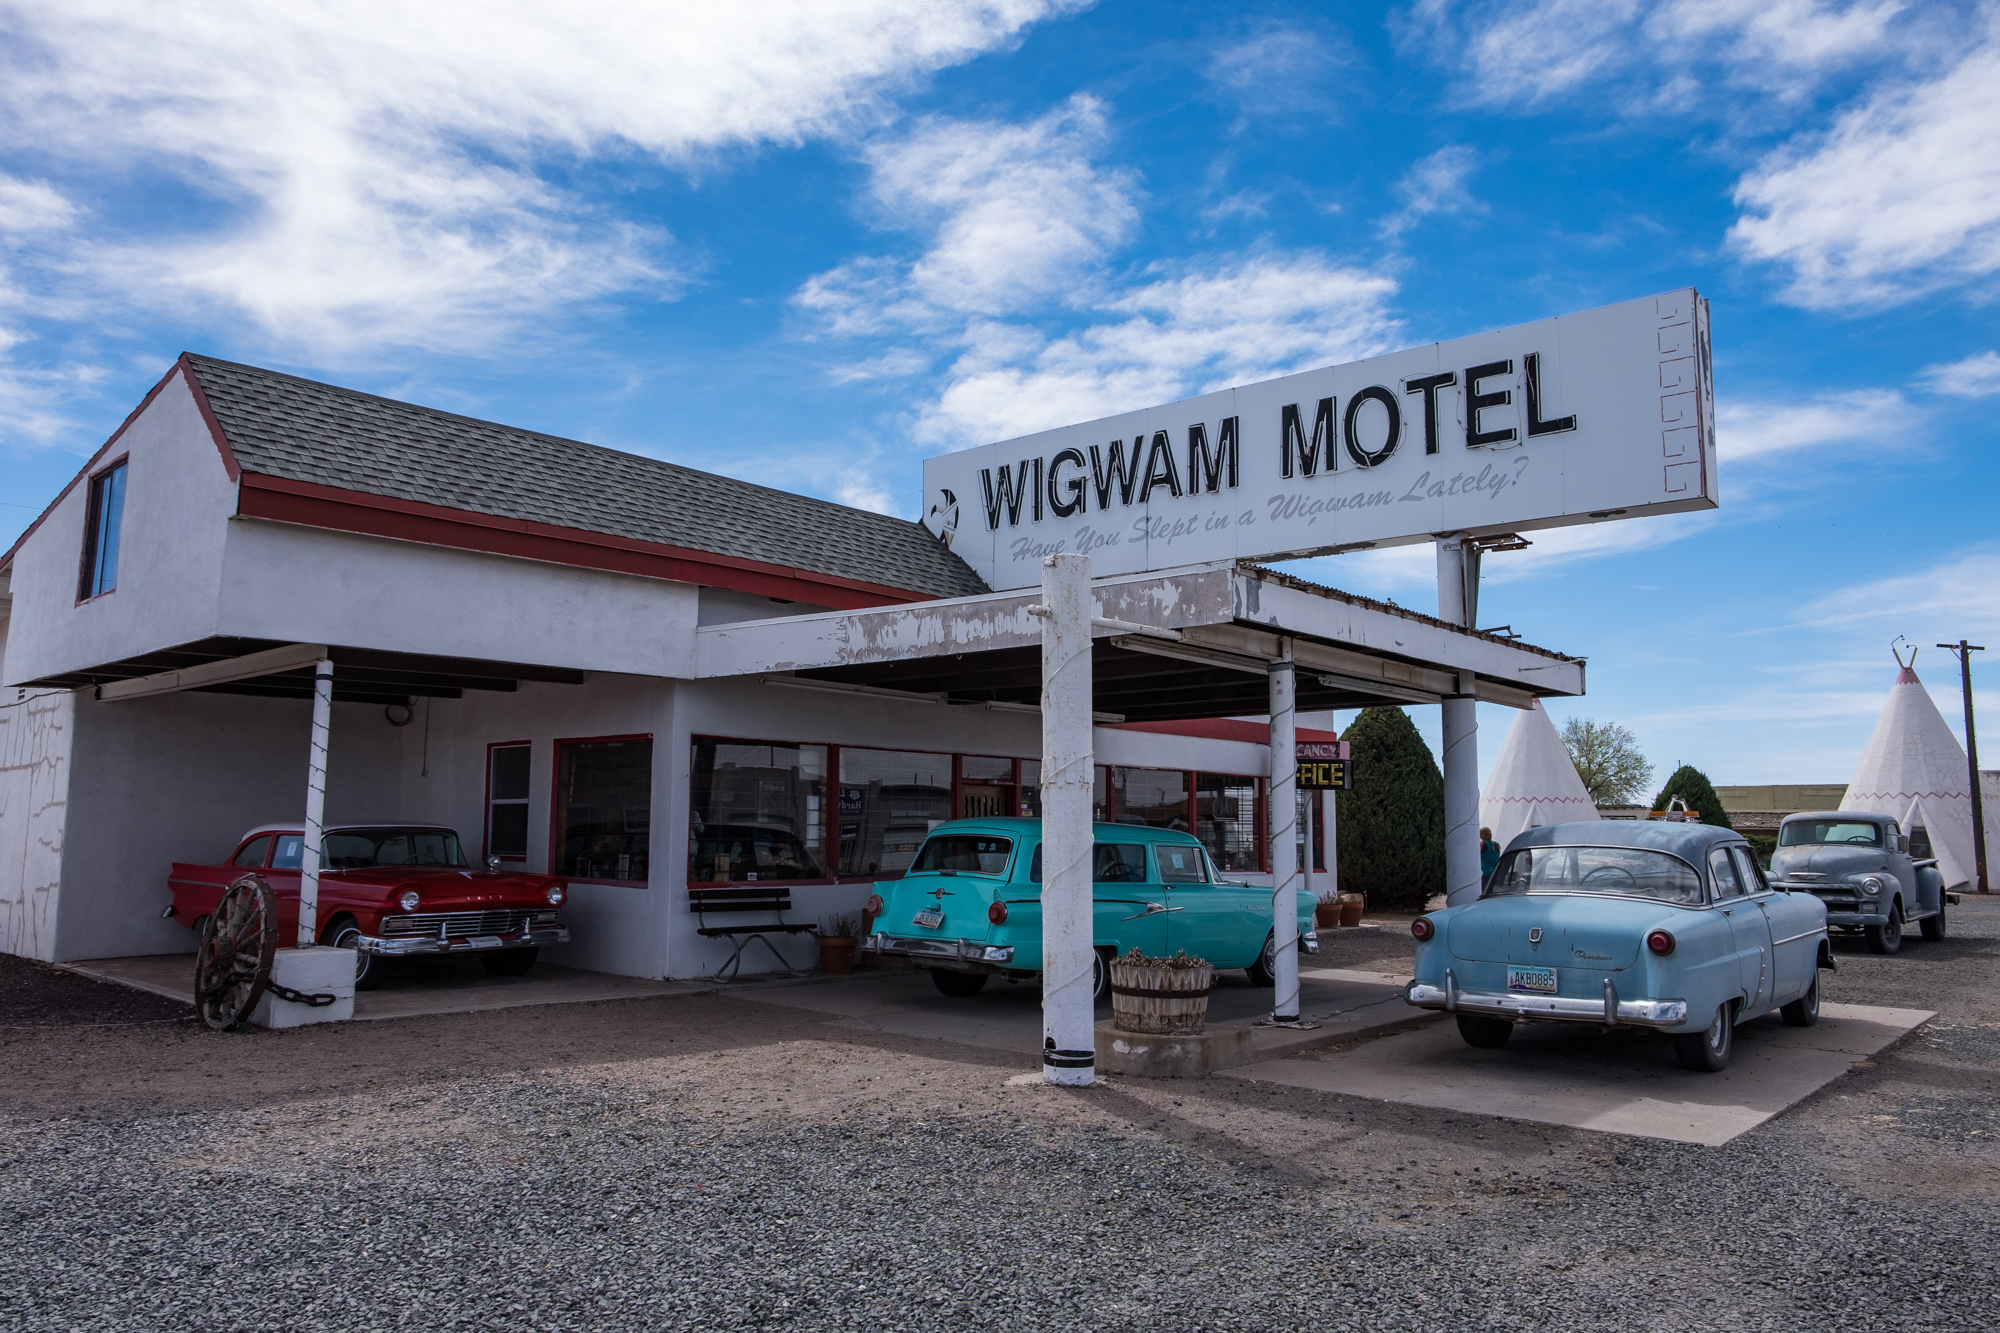 The front entrance of the Wigwam Motel in Holbrook, Arizona.